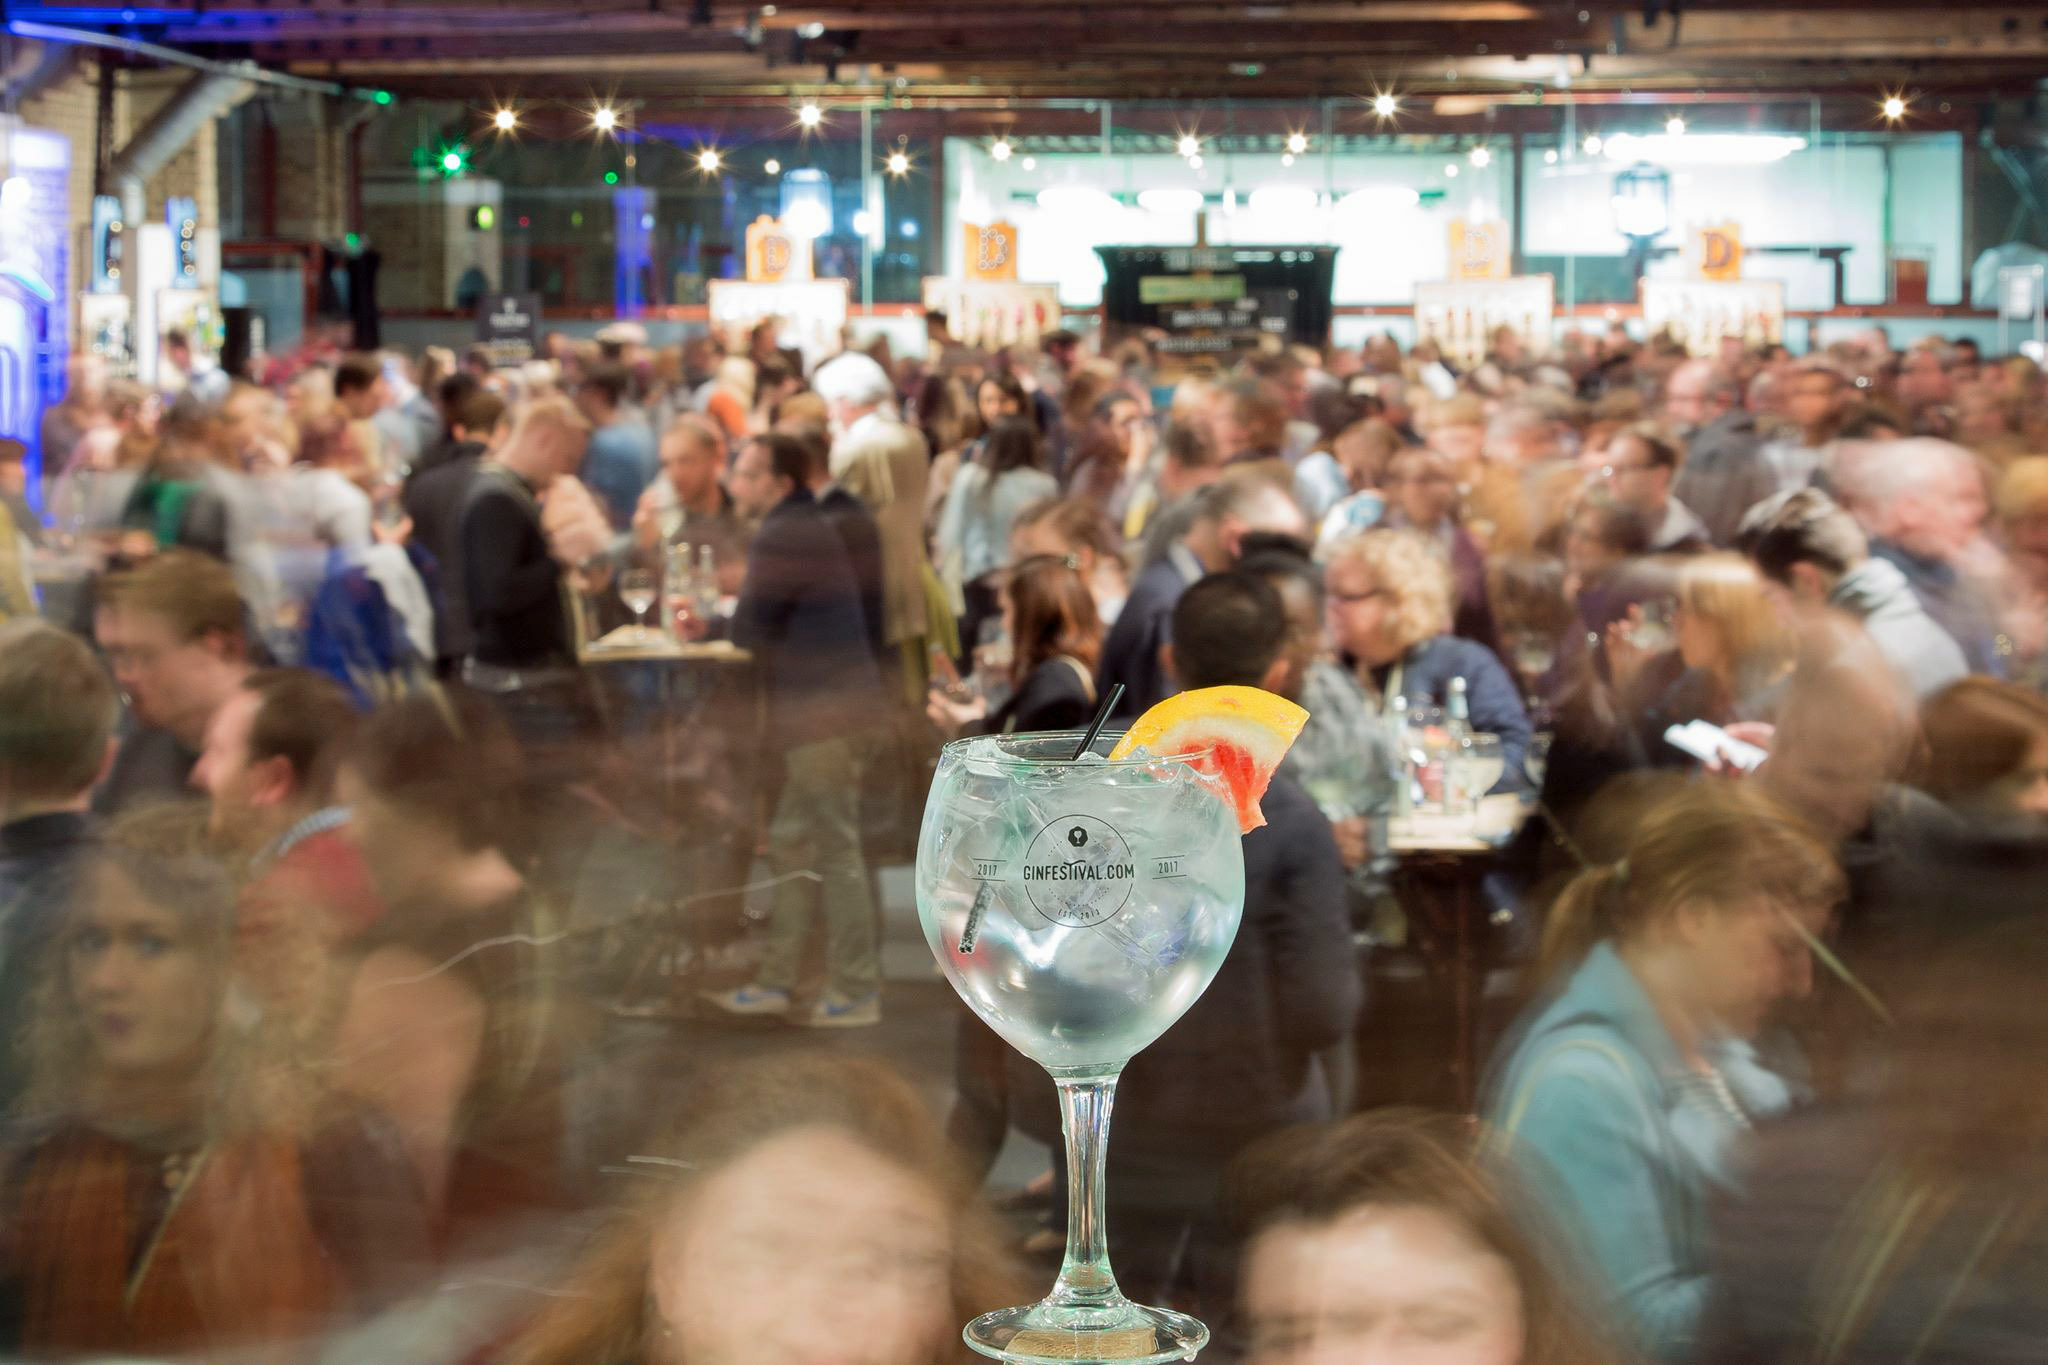 This year's Gin Festival will be held from May 11 to May 13